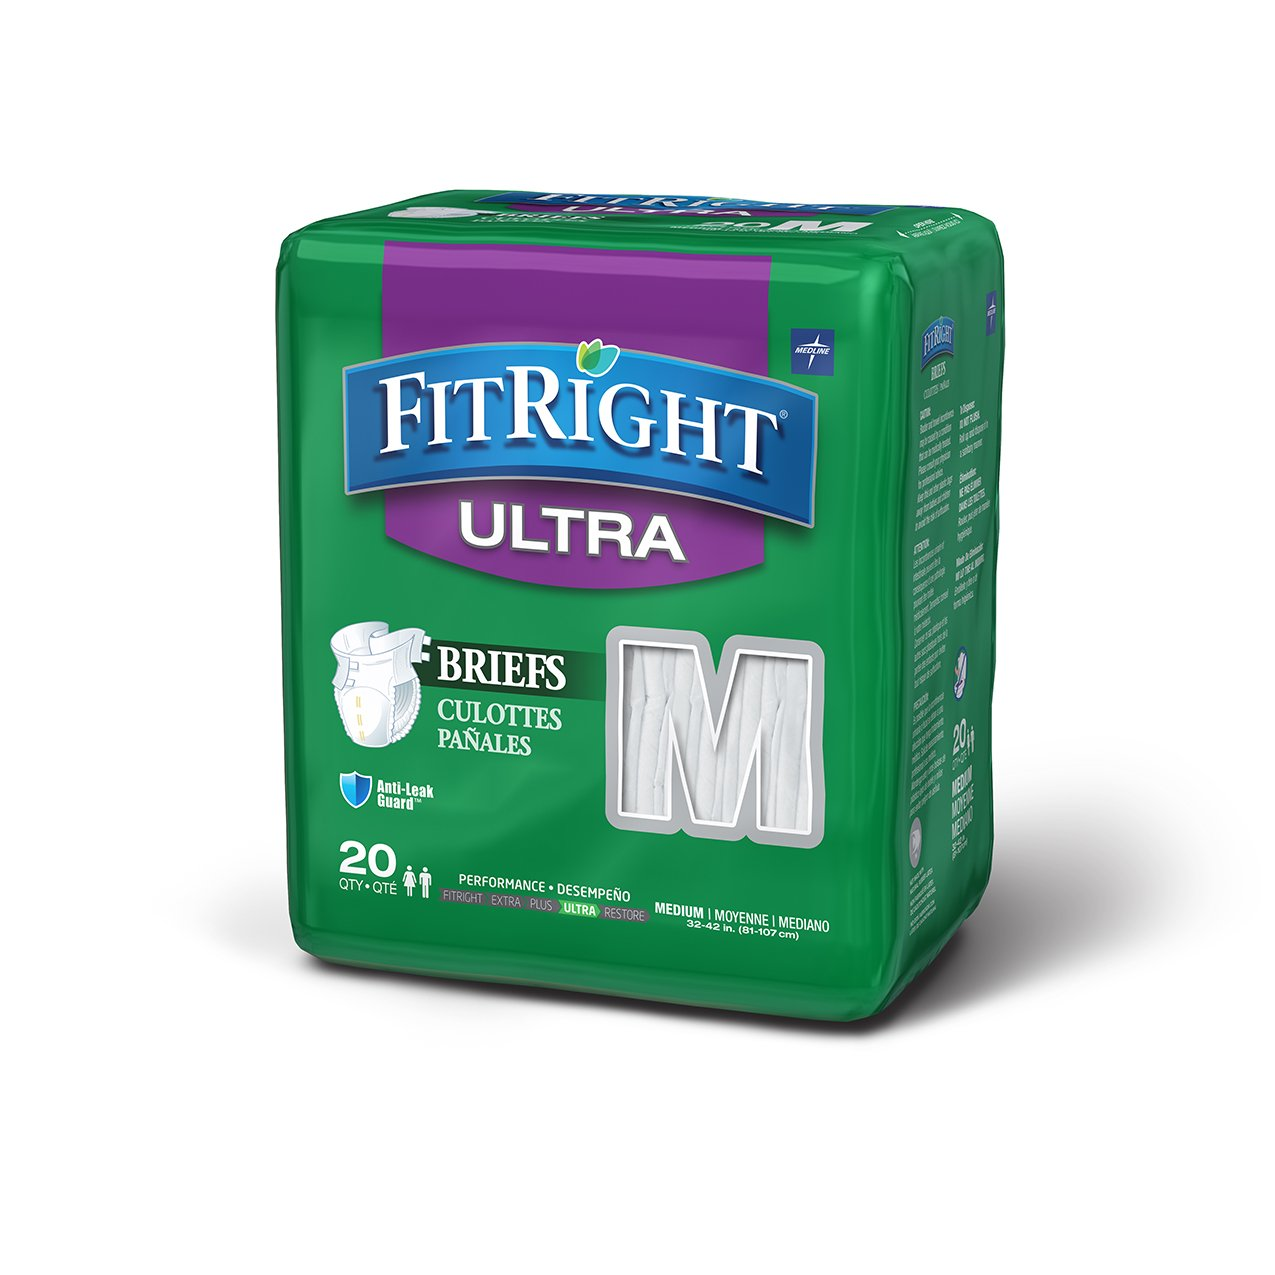 FitRight Ultra Adult Briefs with Tabs, Heavy Absorbency, Medium, 32''-42'', 4 packs of 20 (80 total)